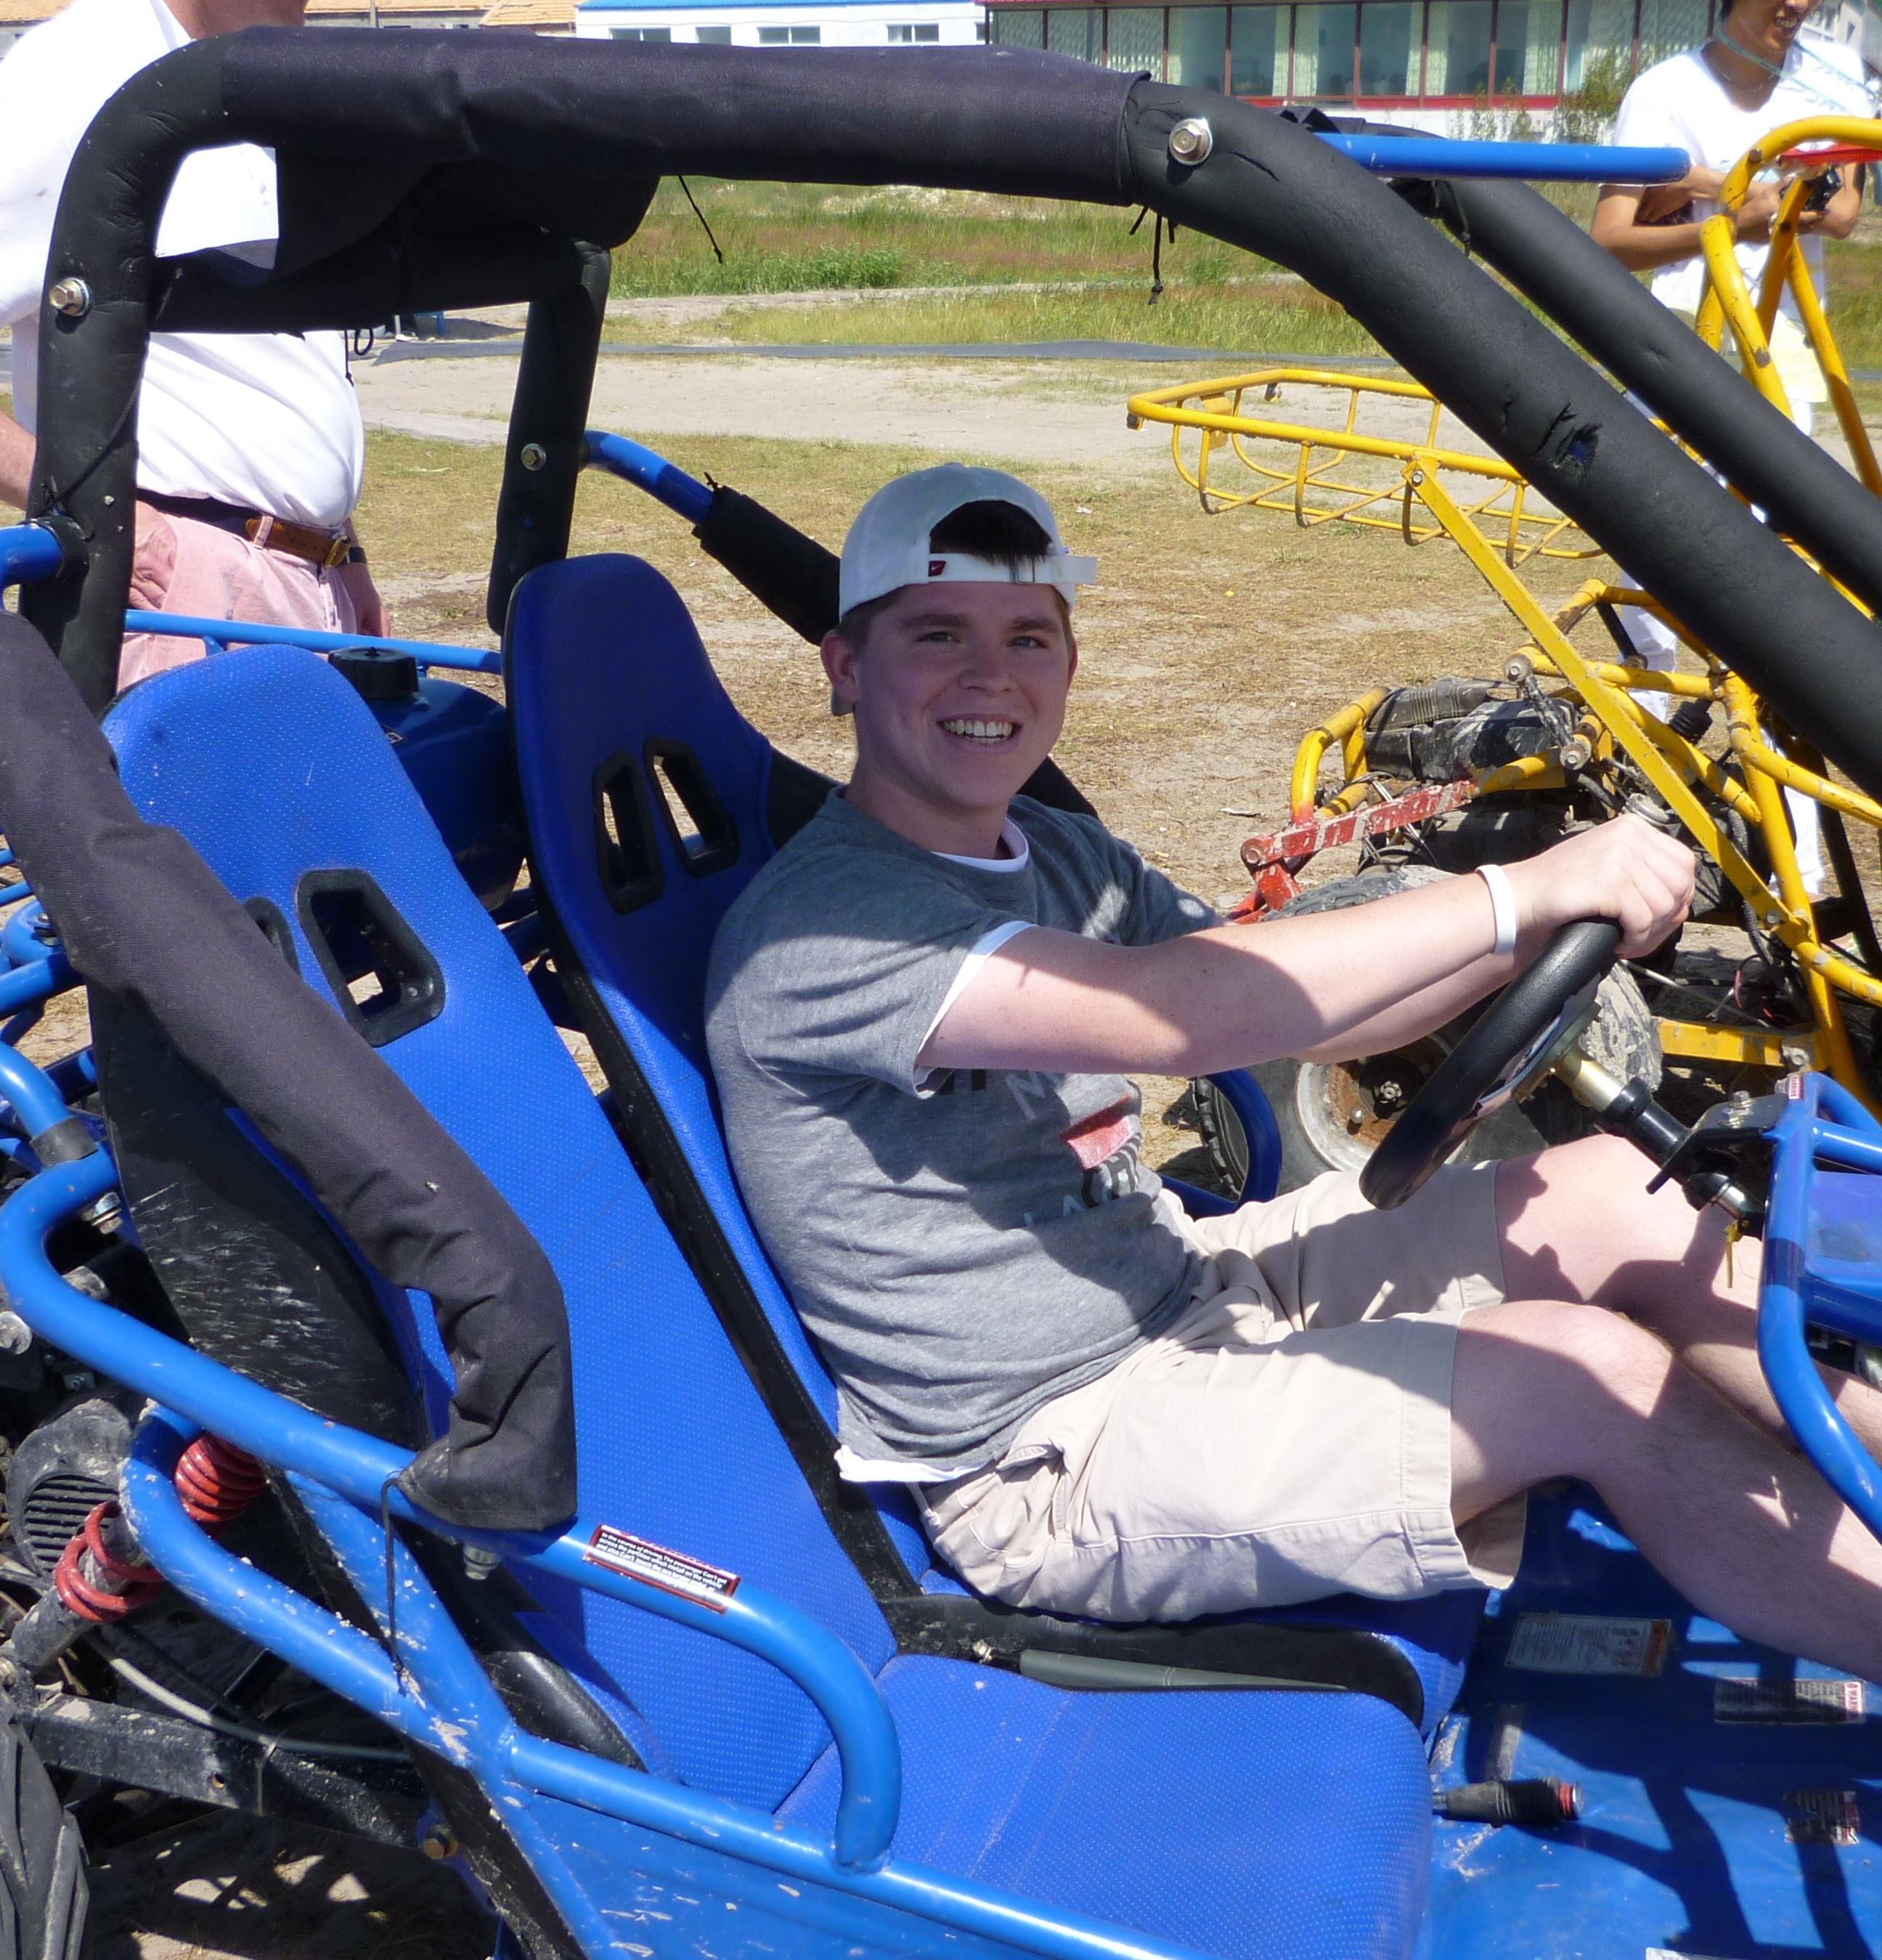 Peter in the dune buggy before he flips it